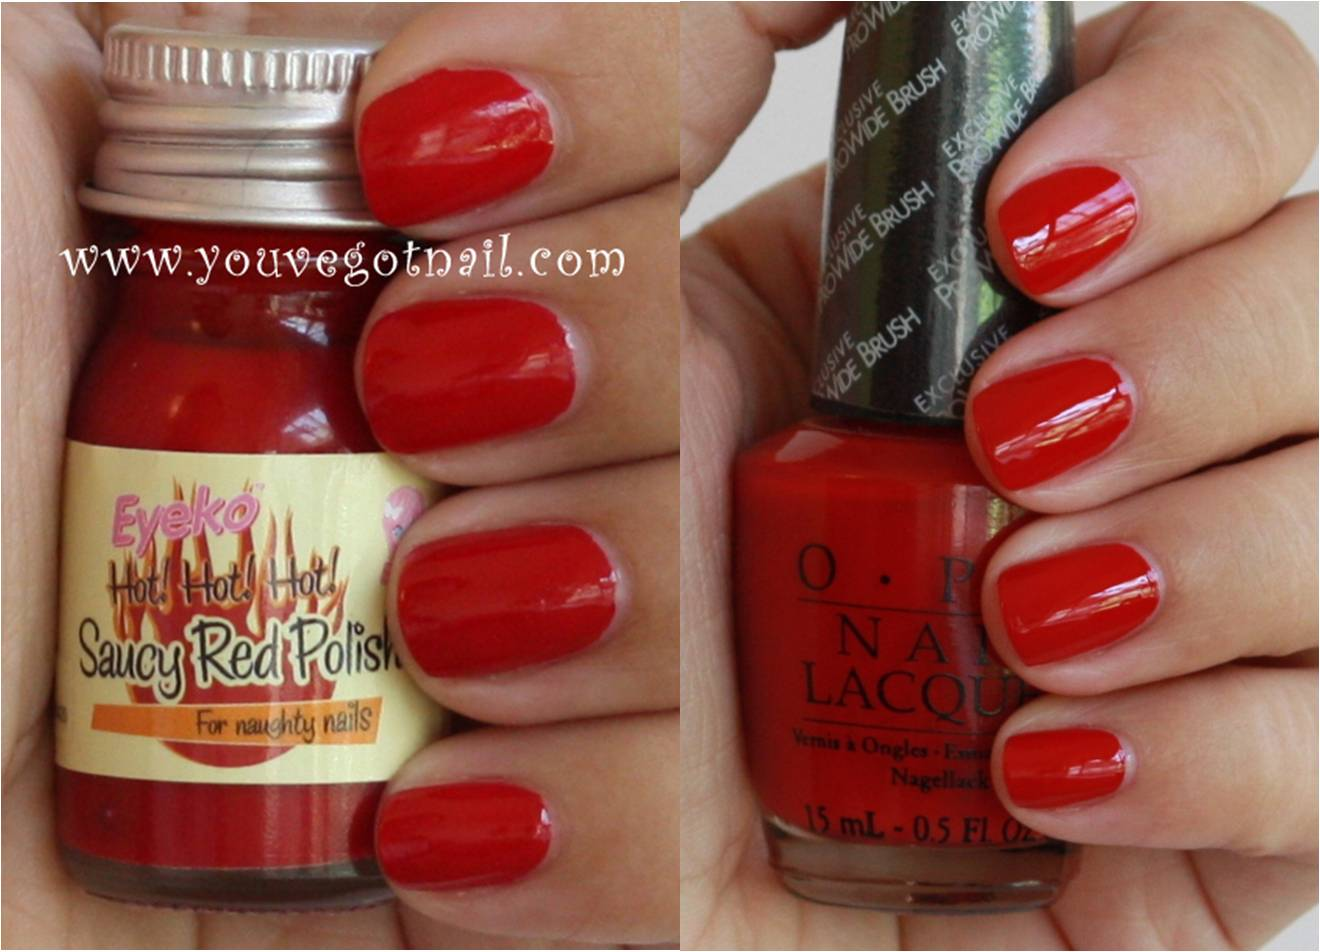 [Saucy+Red+Polish+vs+O]